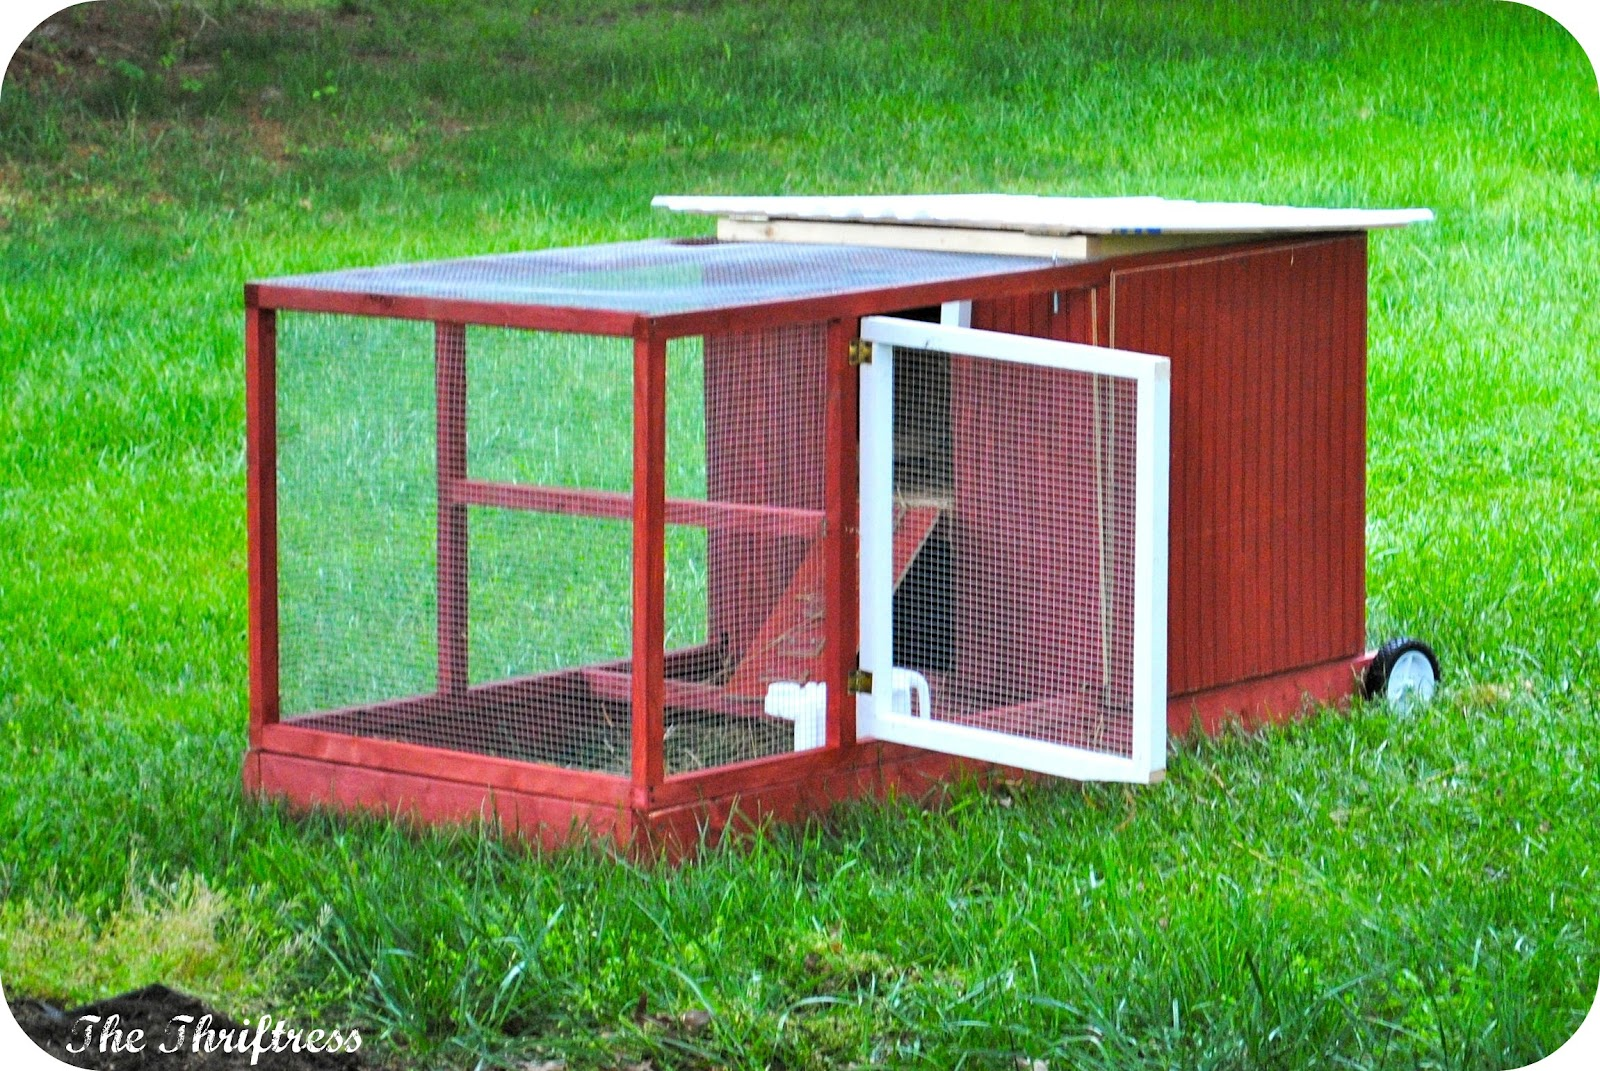 Nadek build chicken coop wood pallets Chicken coop from pallet wood